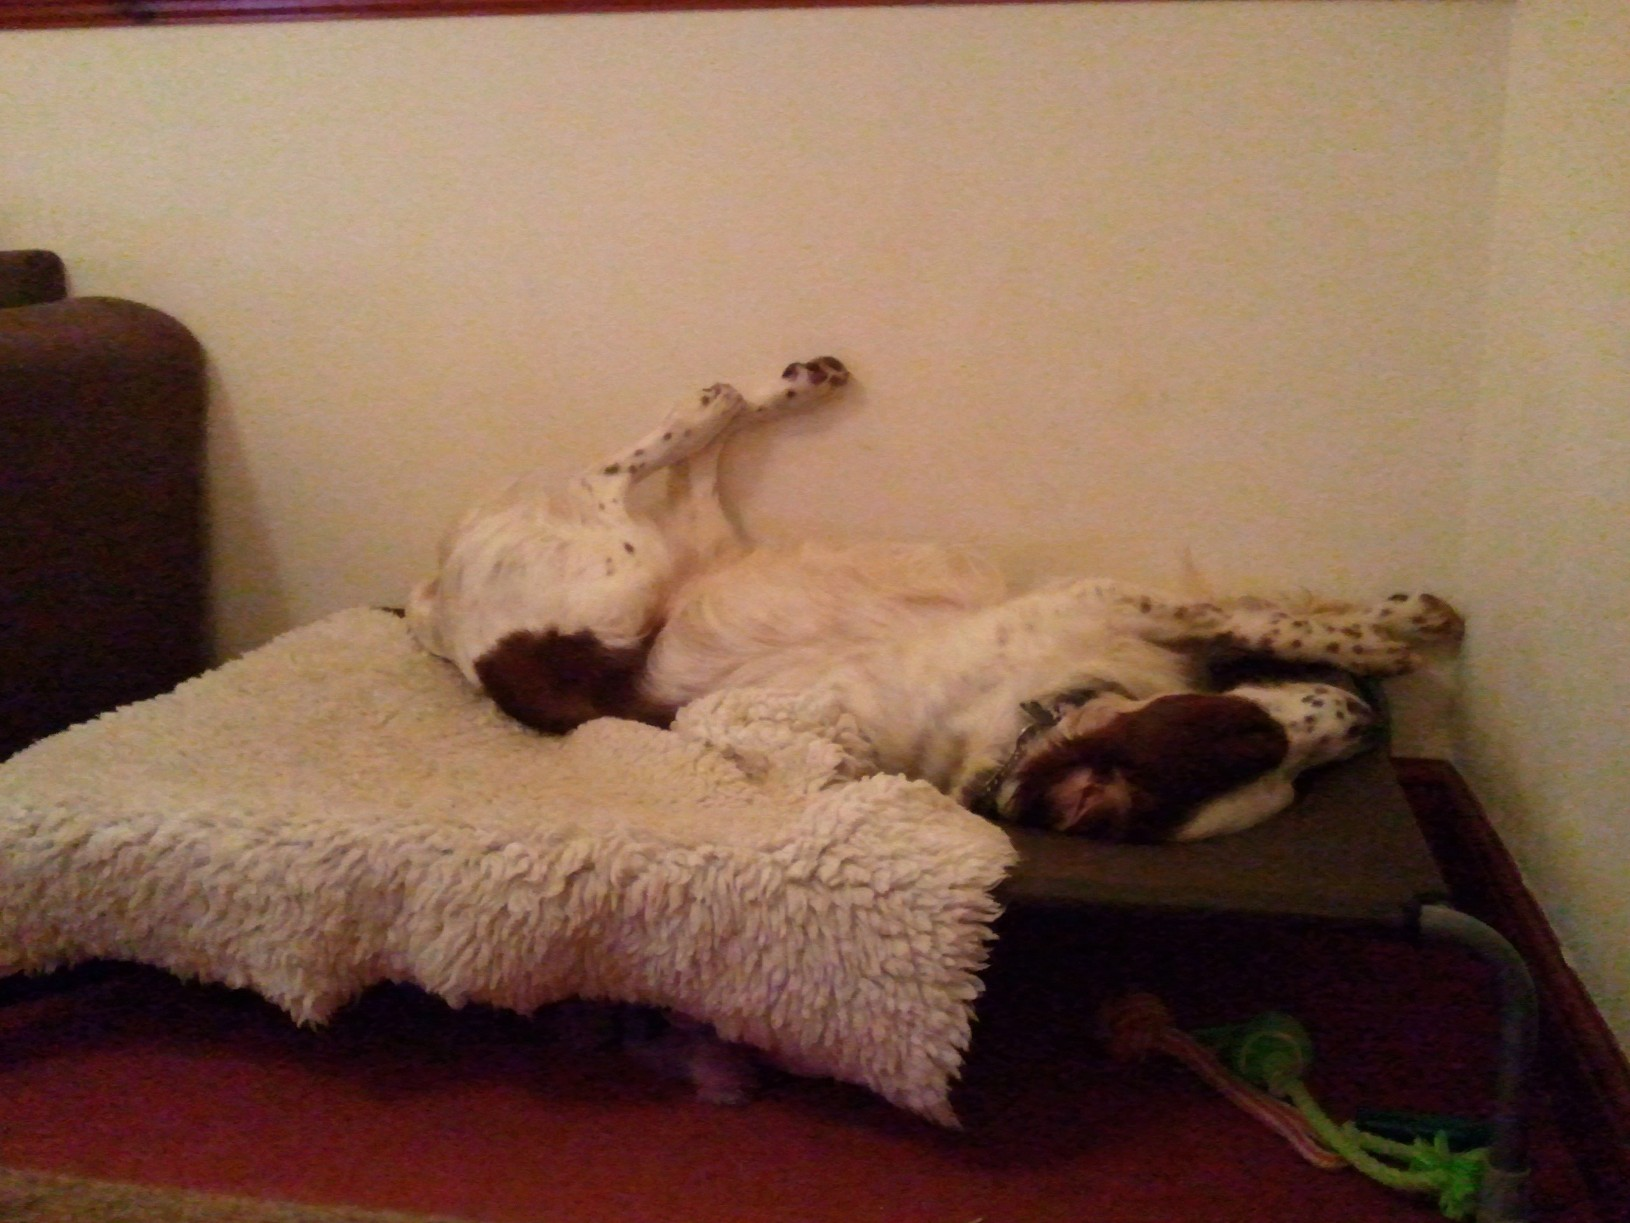 Product recommendations: The Original Hi K9 Raised dog bed